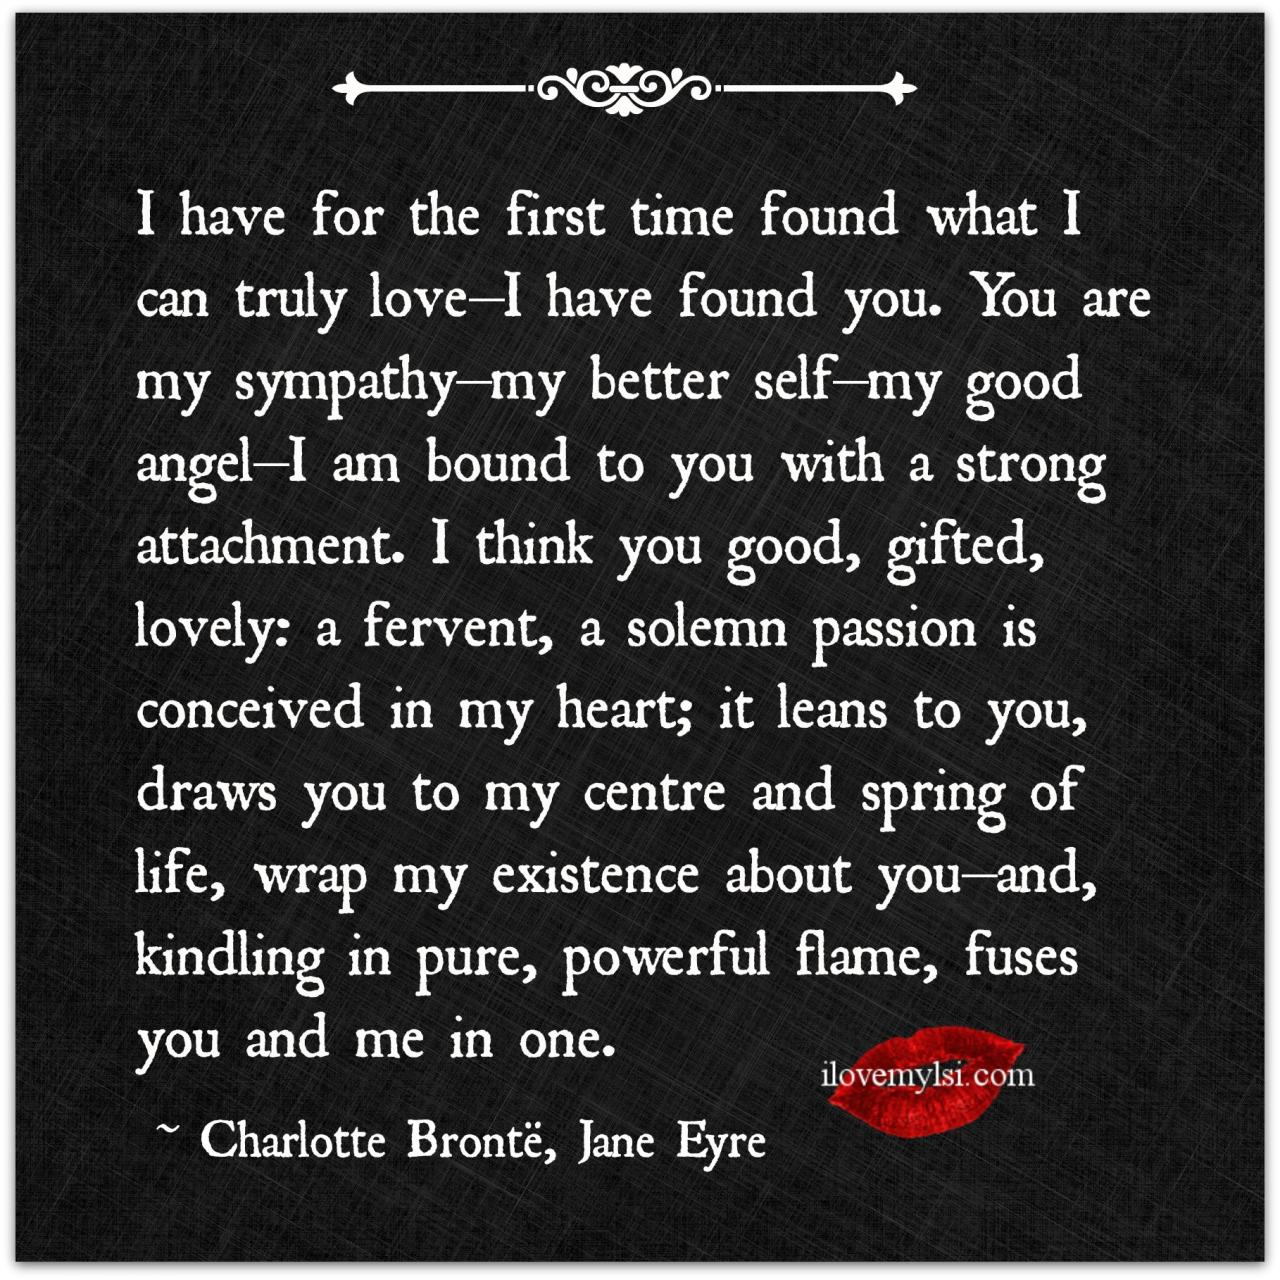 Charlotte Bronte Jane Eyre I Have For The First Time Found What I Can Truly Love